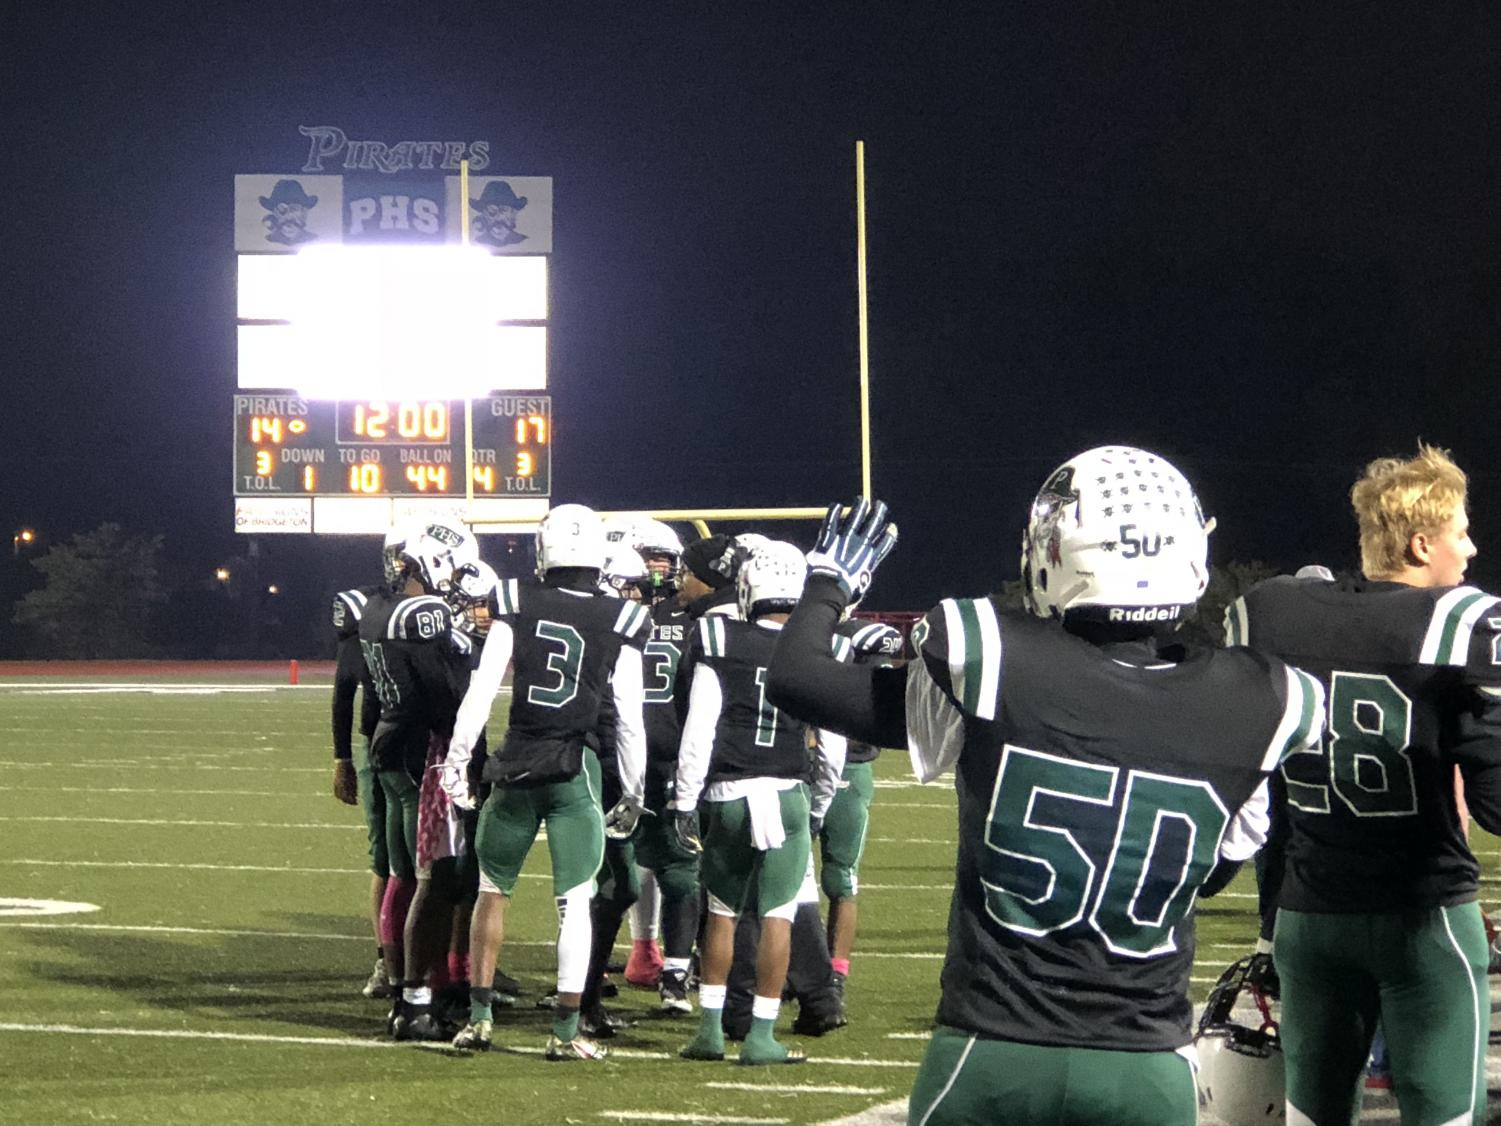 Pattonville players hold up four fingers to signal the start of the 4th quarter in the playoff game against Marquette High School.